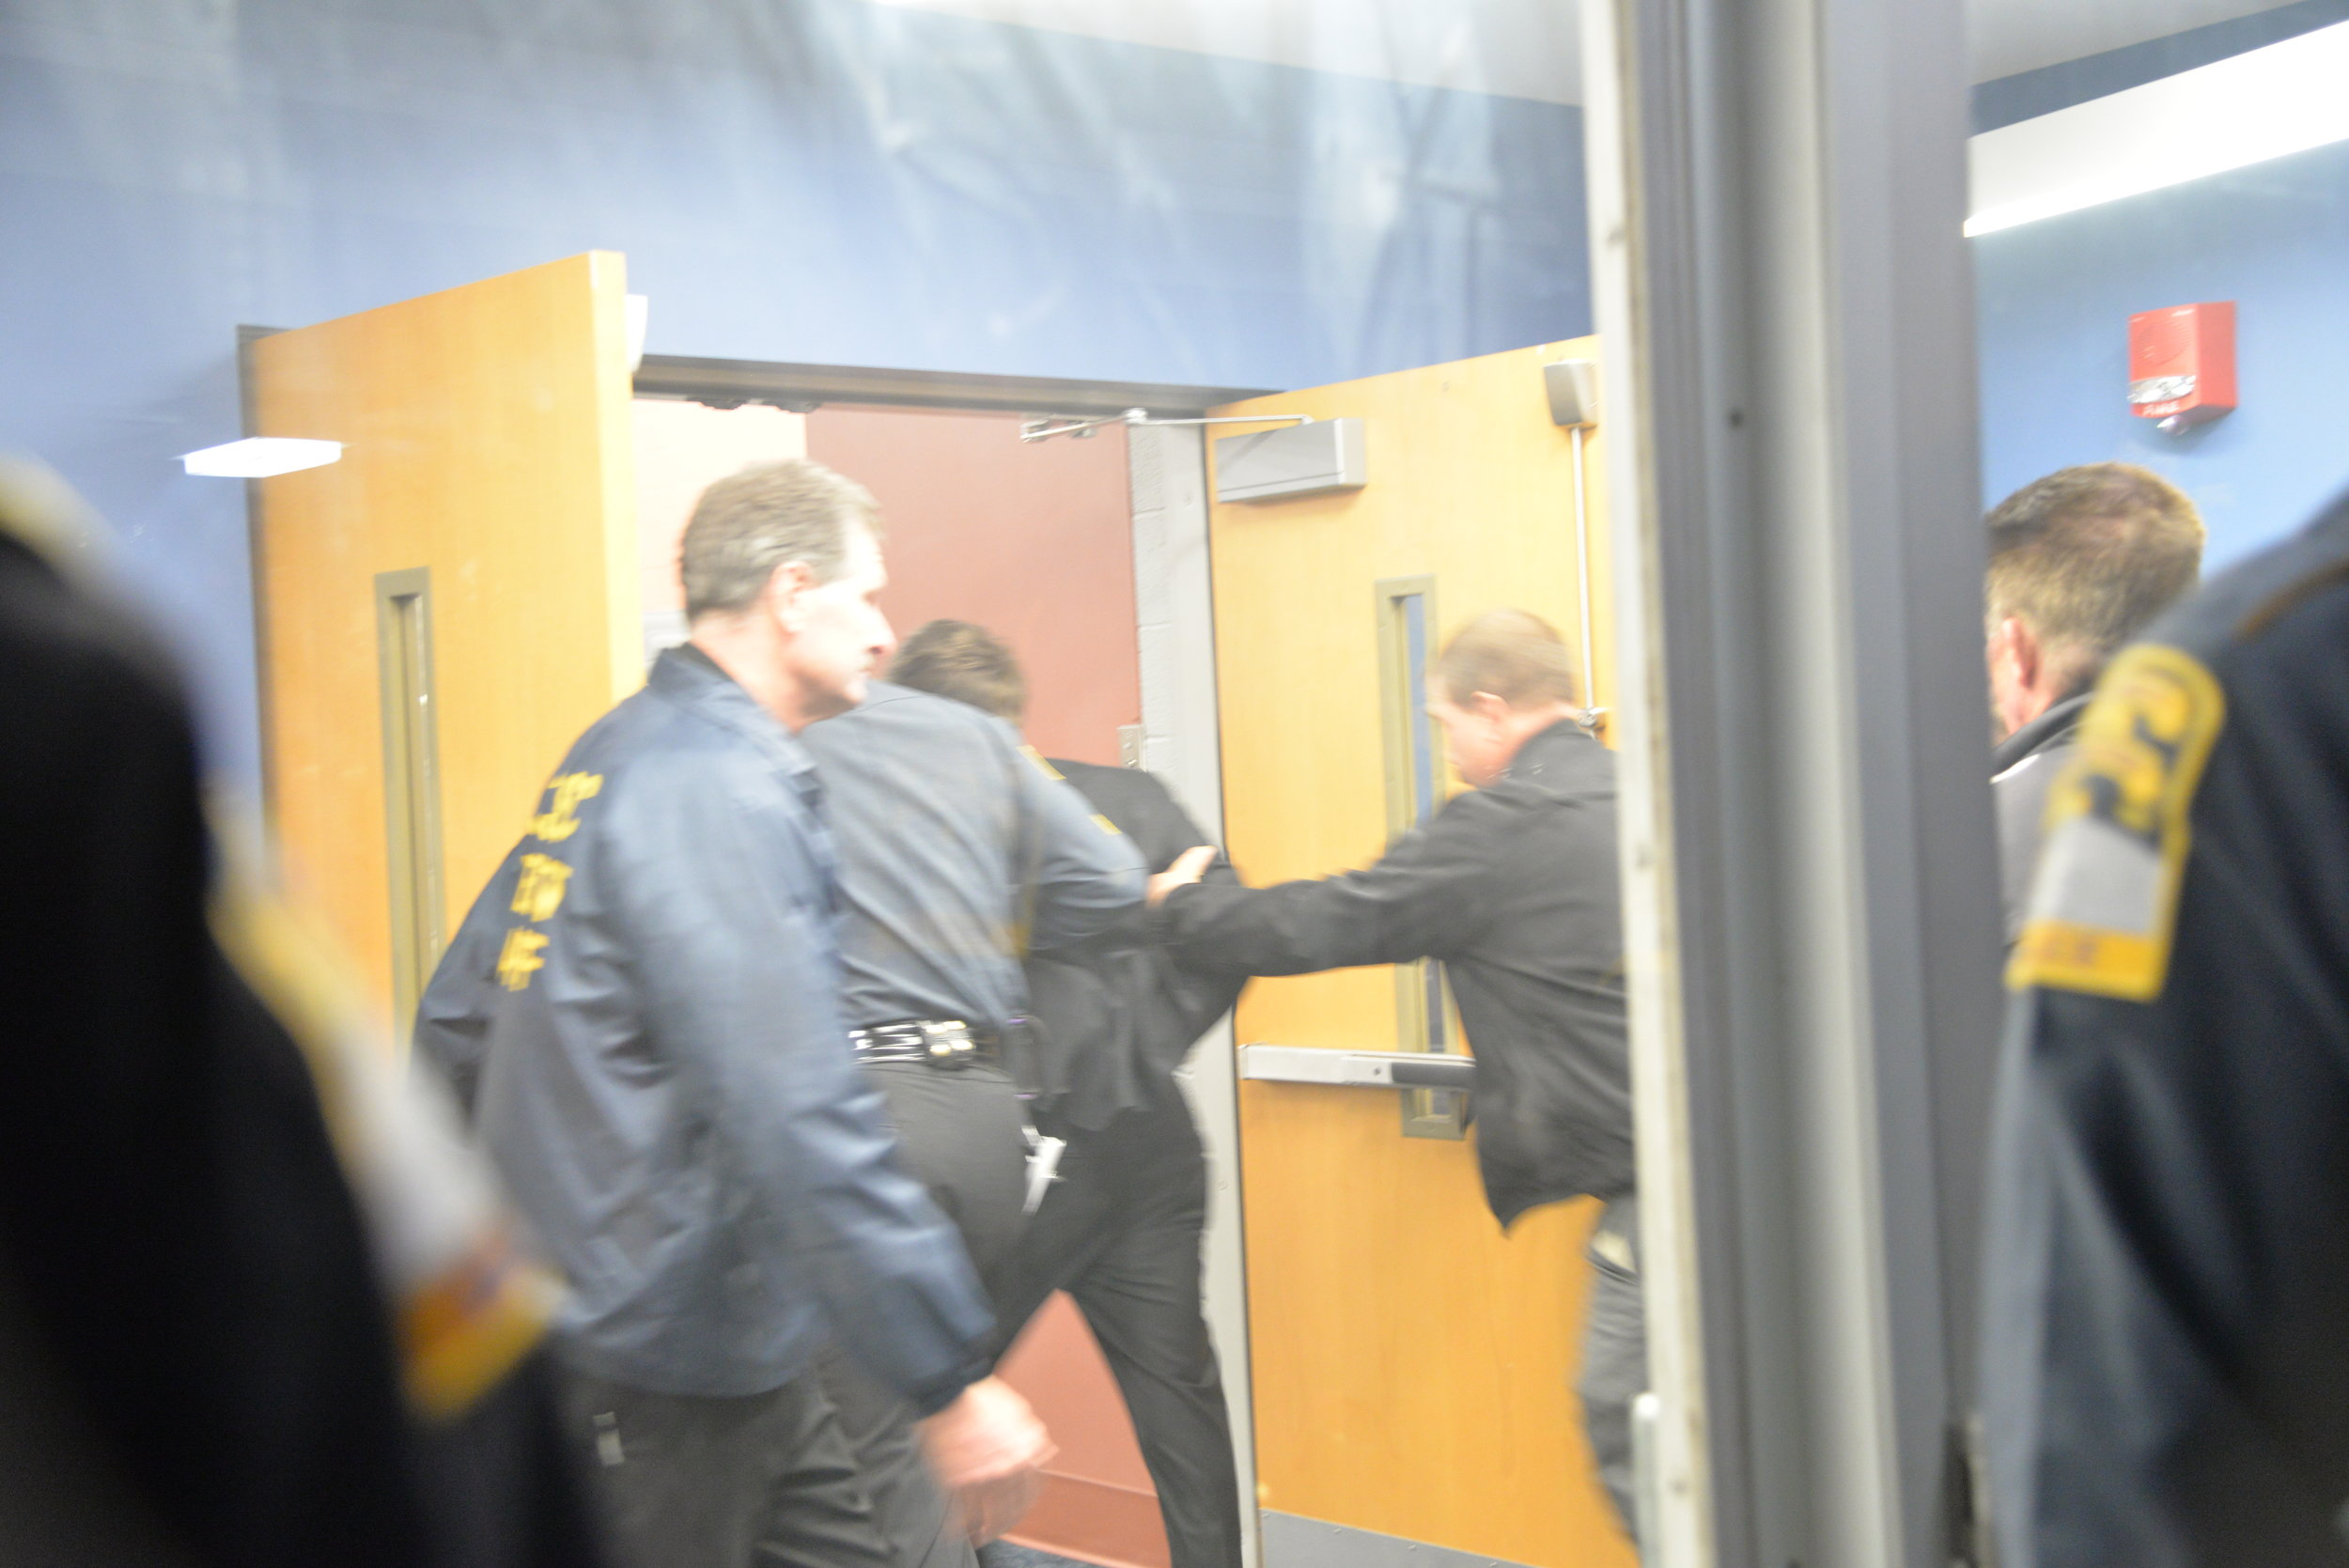 Wintrich was escorted through the back door of Schenker Hall. He was charged with second degree breach of peace. (Amar Batra/The Daily Campus)